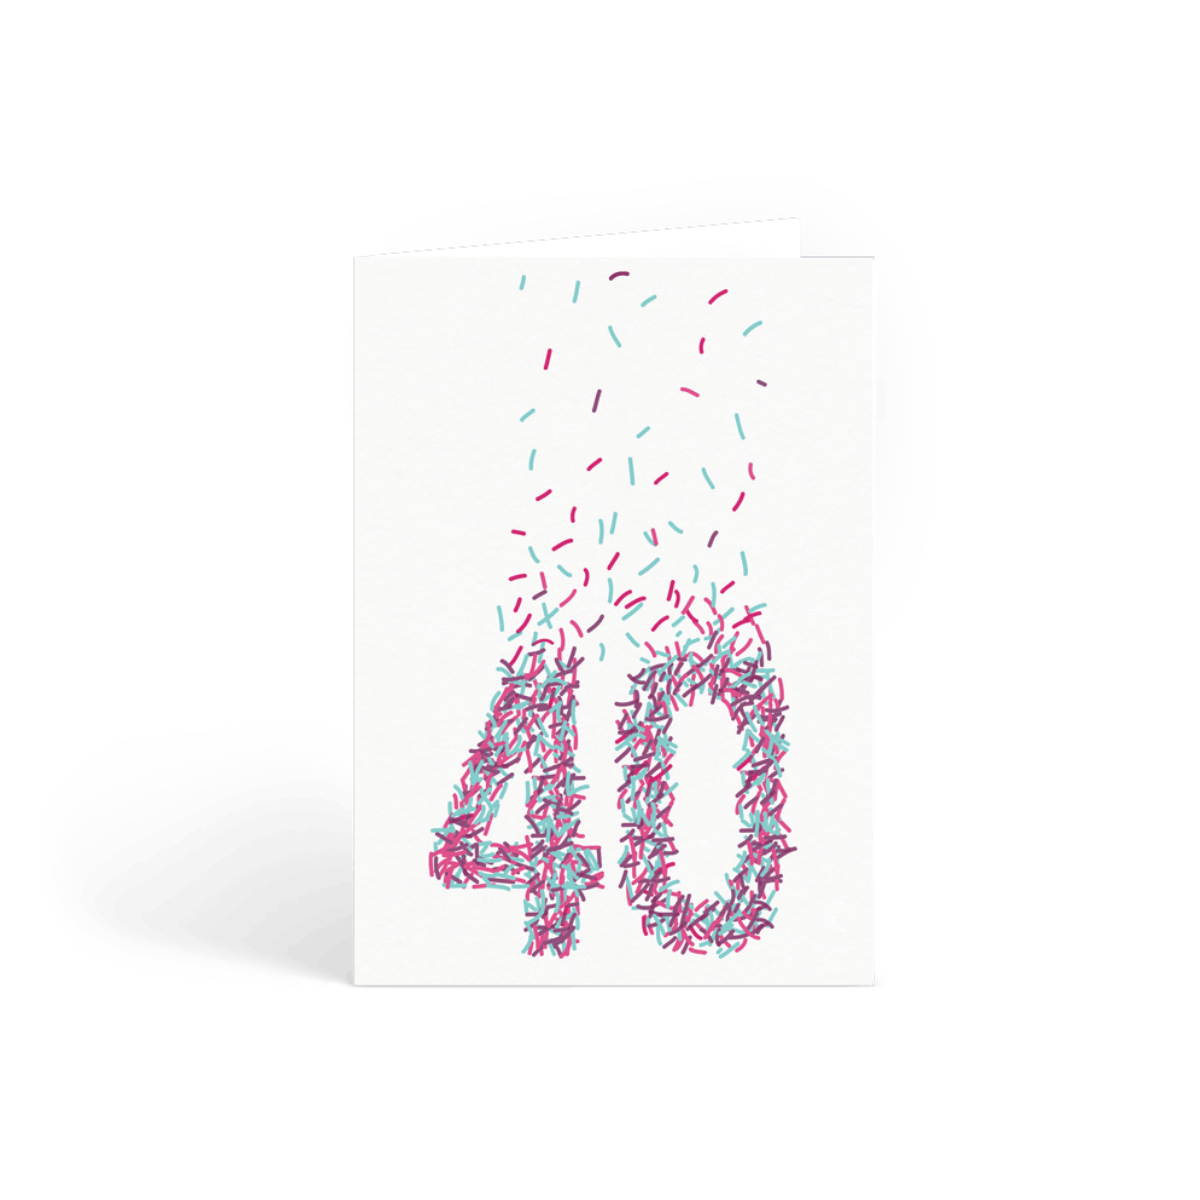 Https%3a%2f%2fwww.papier.com%2fproduct image%2f3501%2f2%2f40th sprinkles 936 front 1453910856.png?ixlib=rb 1.1